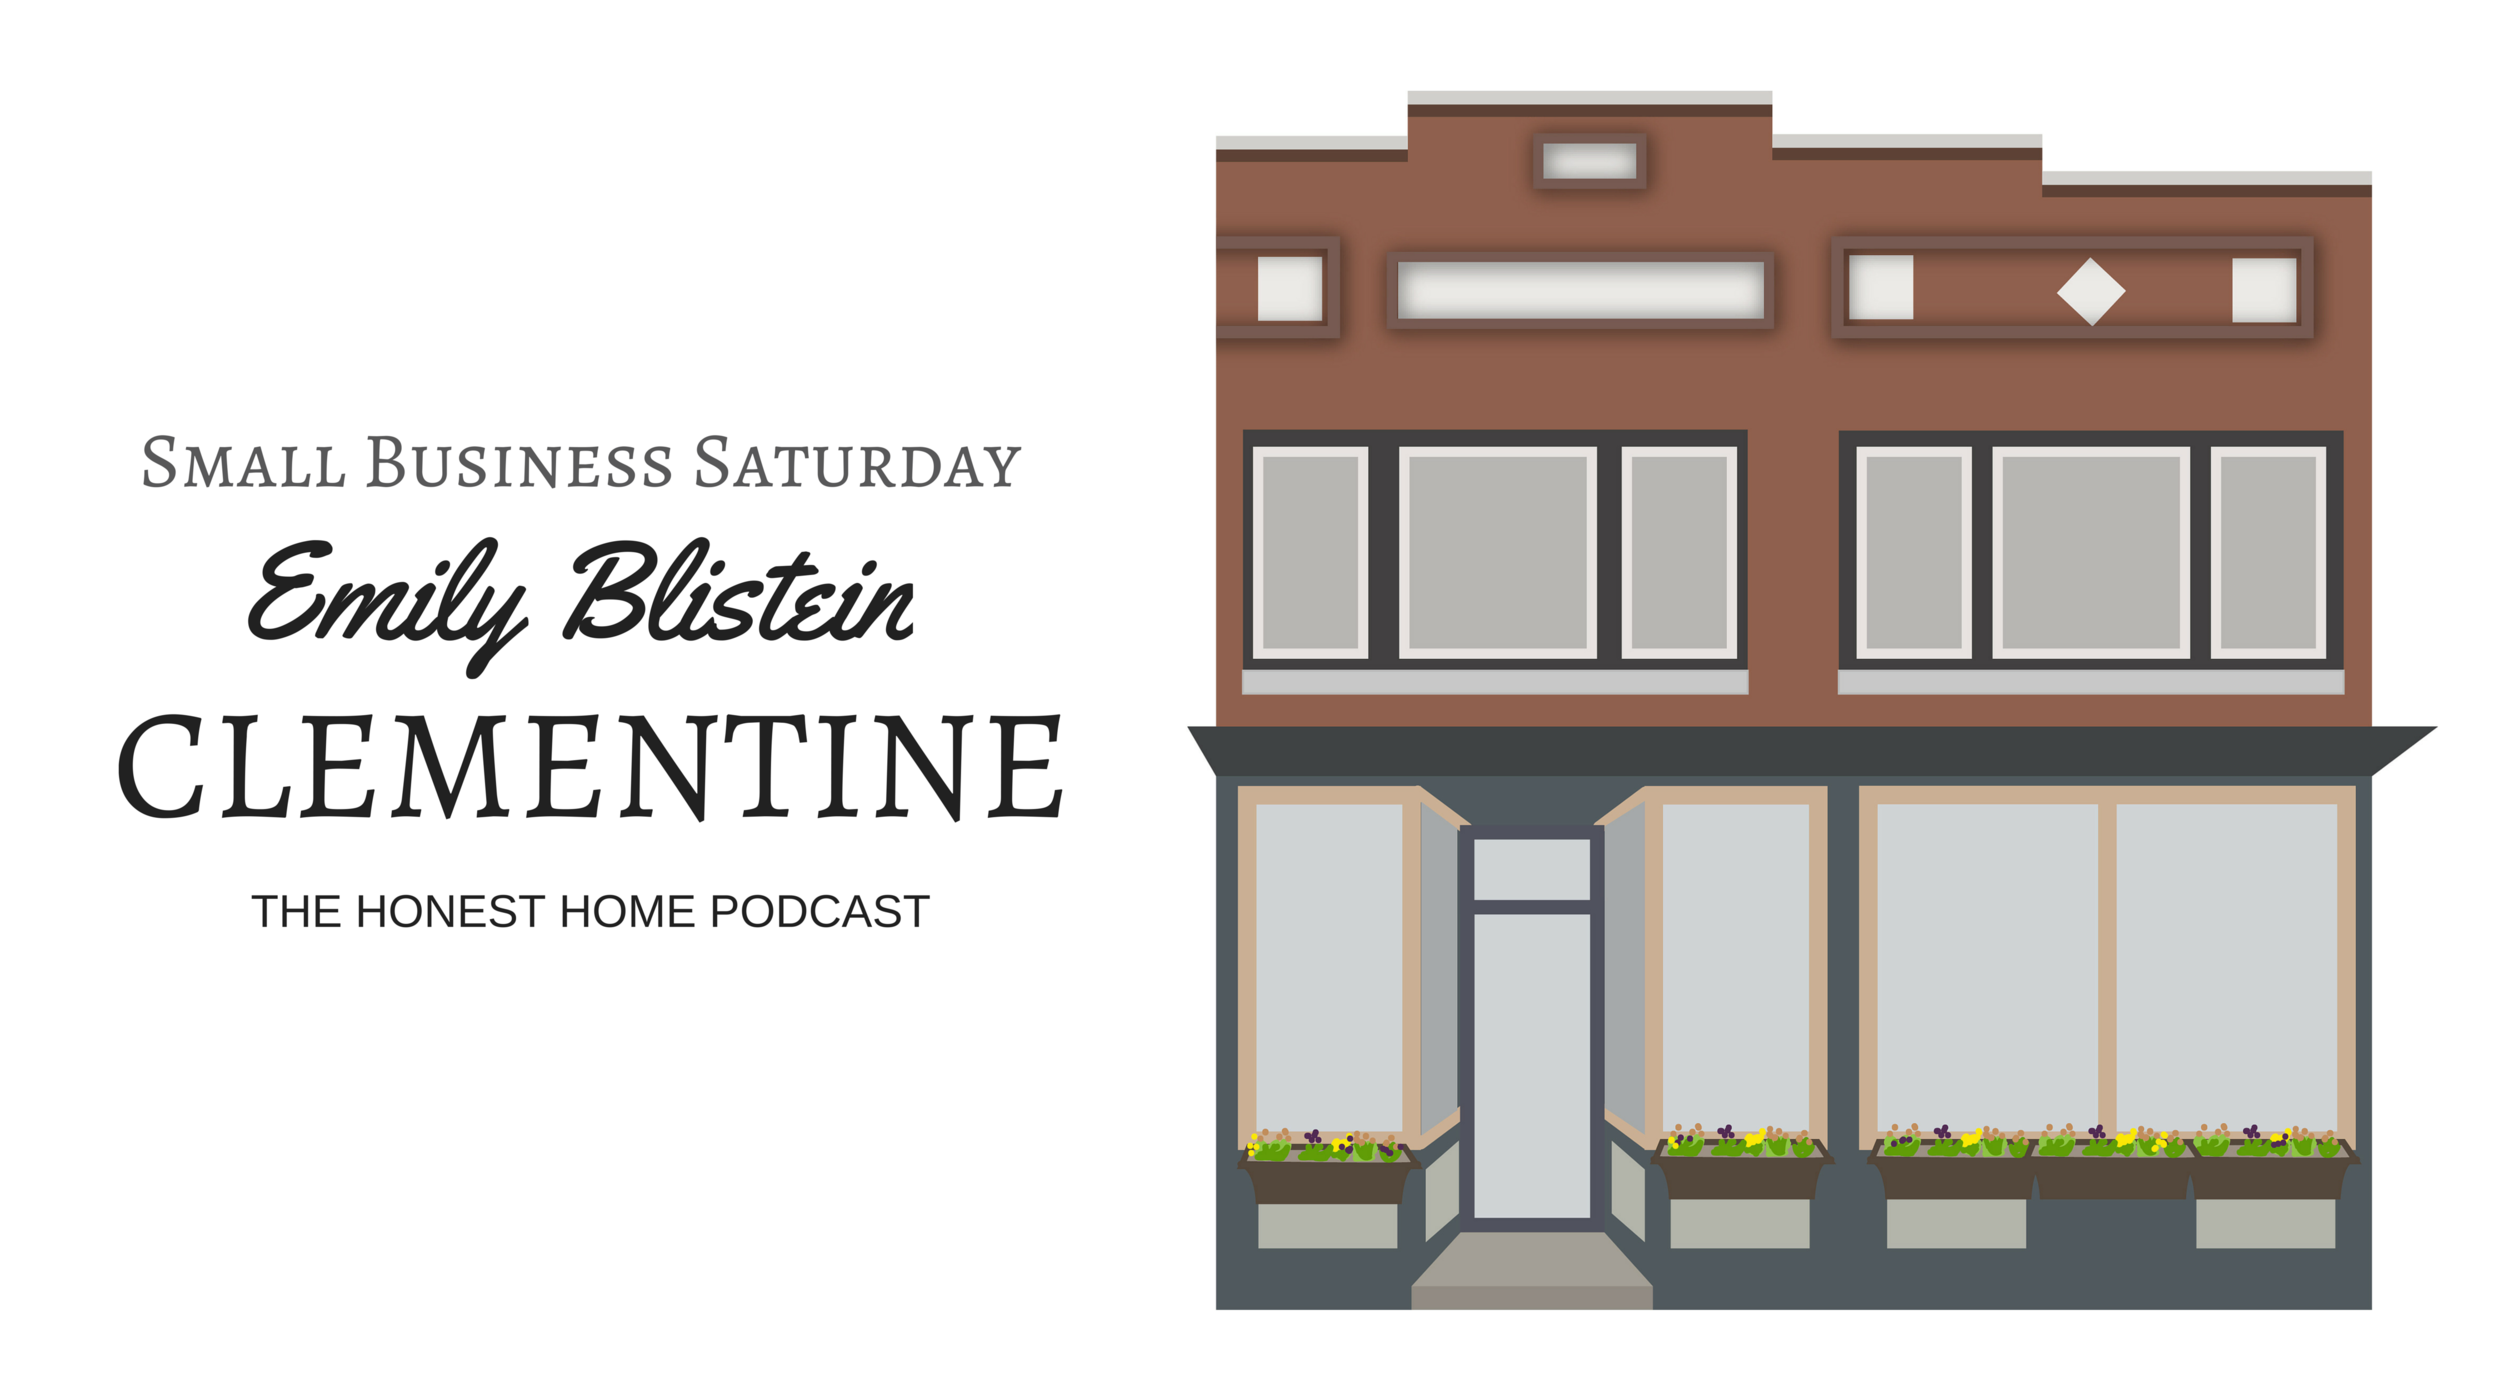 Small Business Saturday | Clementine | The Honest Home Podcast